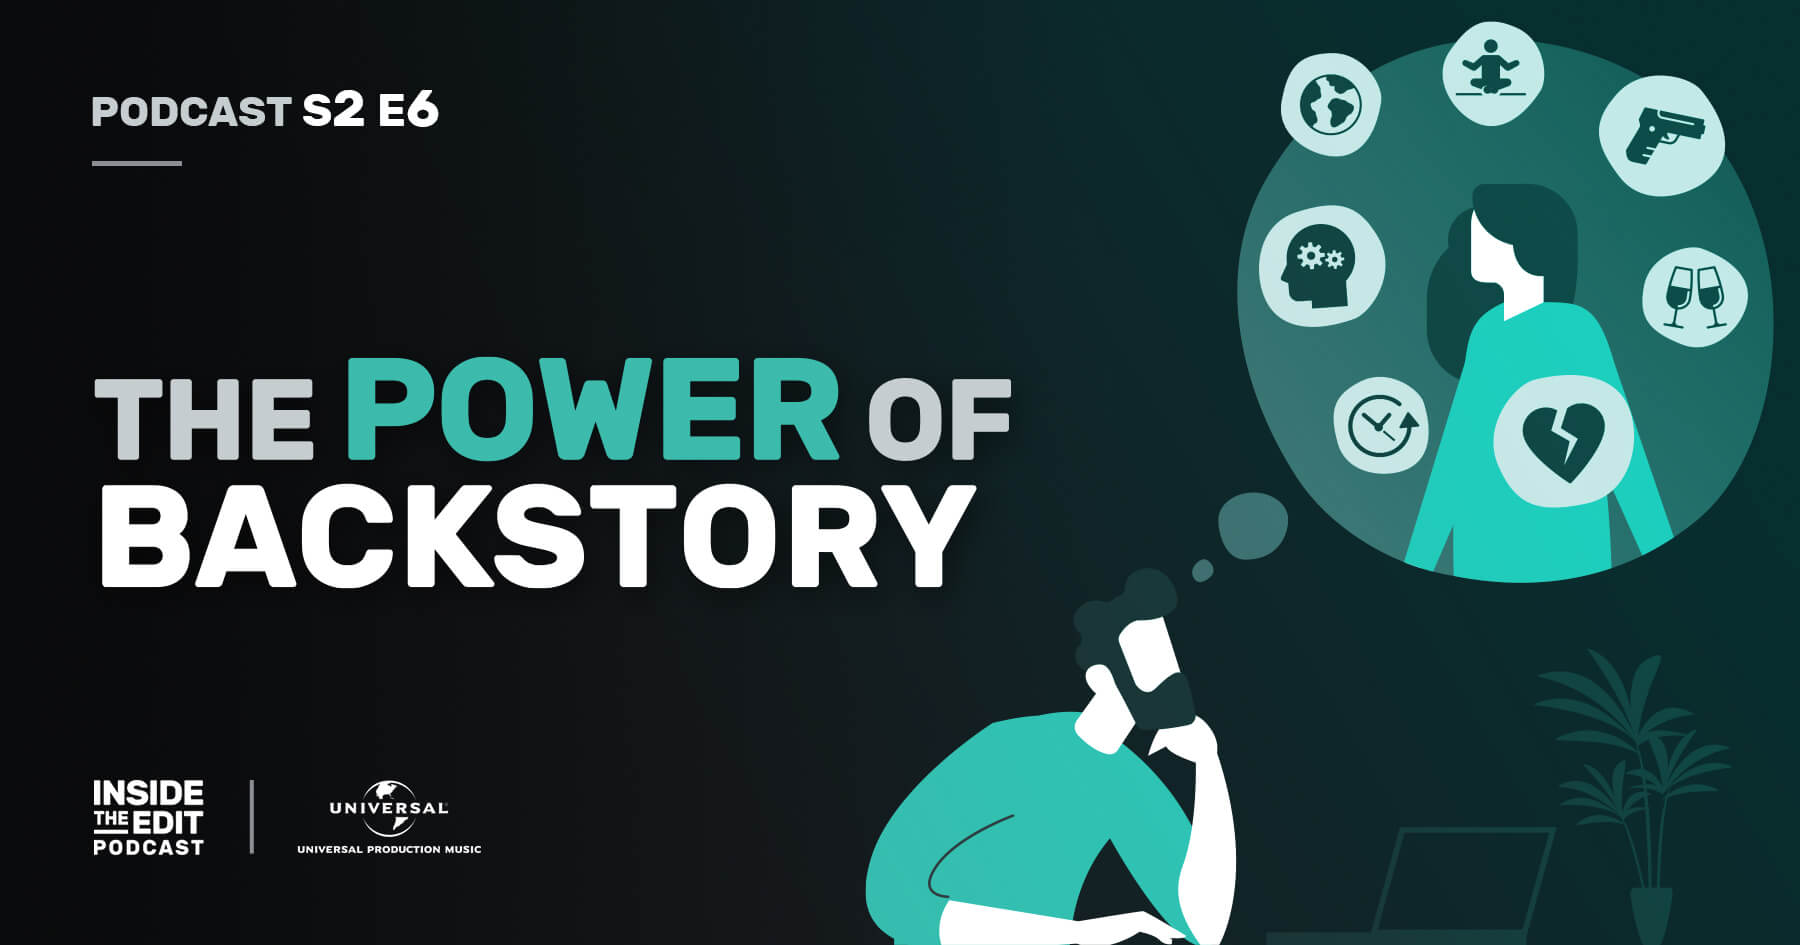 The Power of Backstory